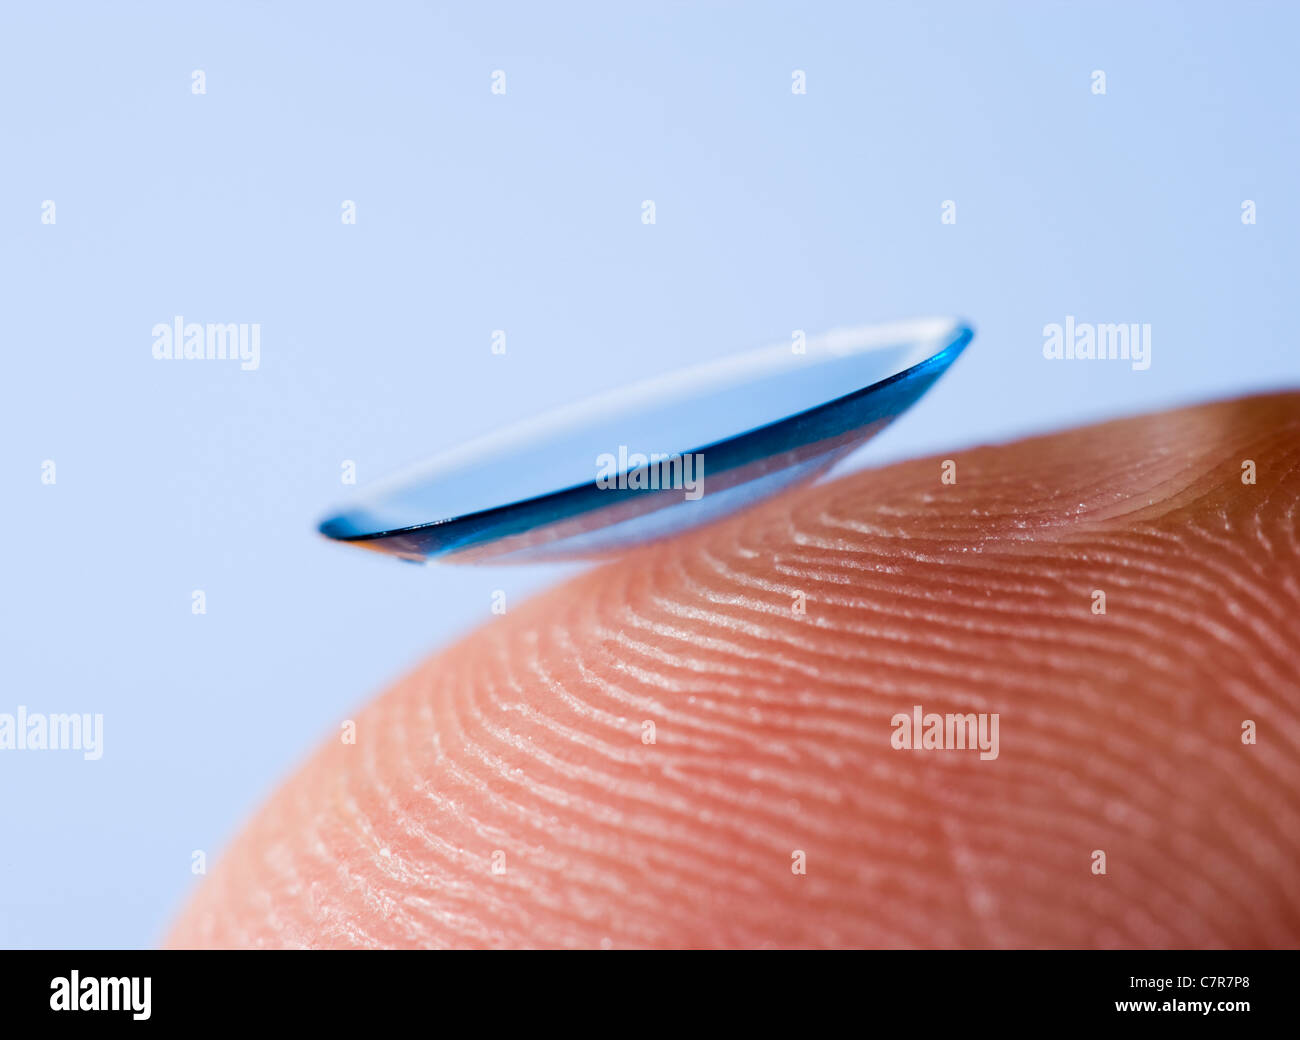 Contact lens. - Stock Image